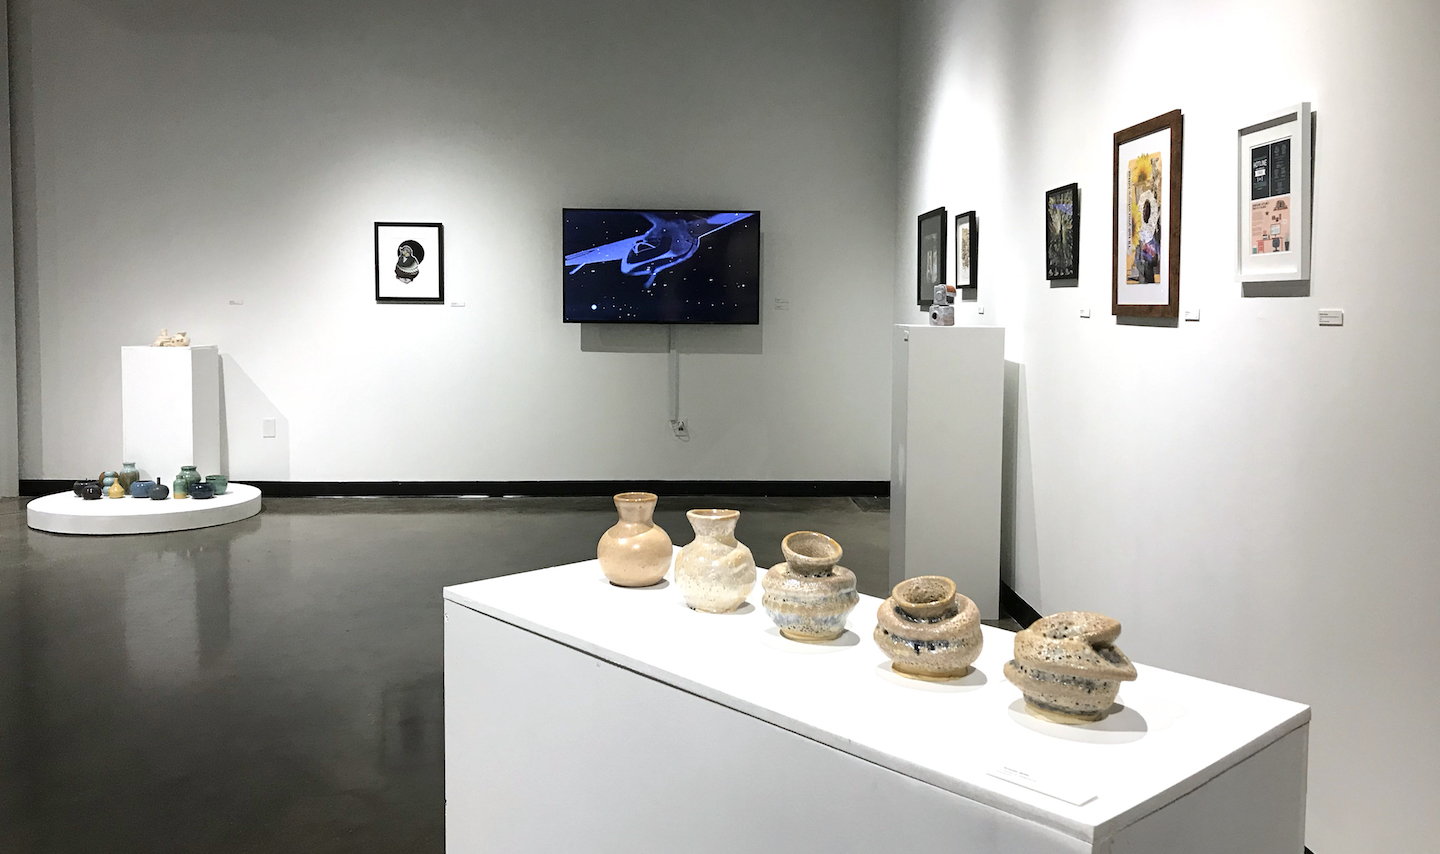 APSU Department of Art + Design celebrates student work with 53rd Annual Juried Student Art Exhibition